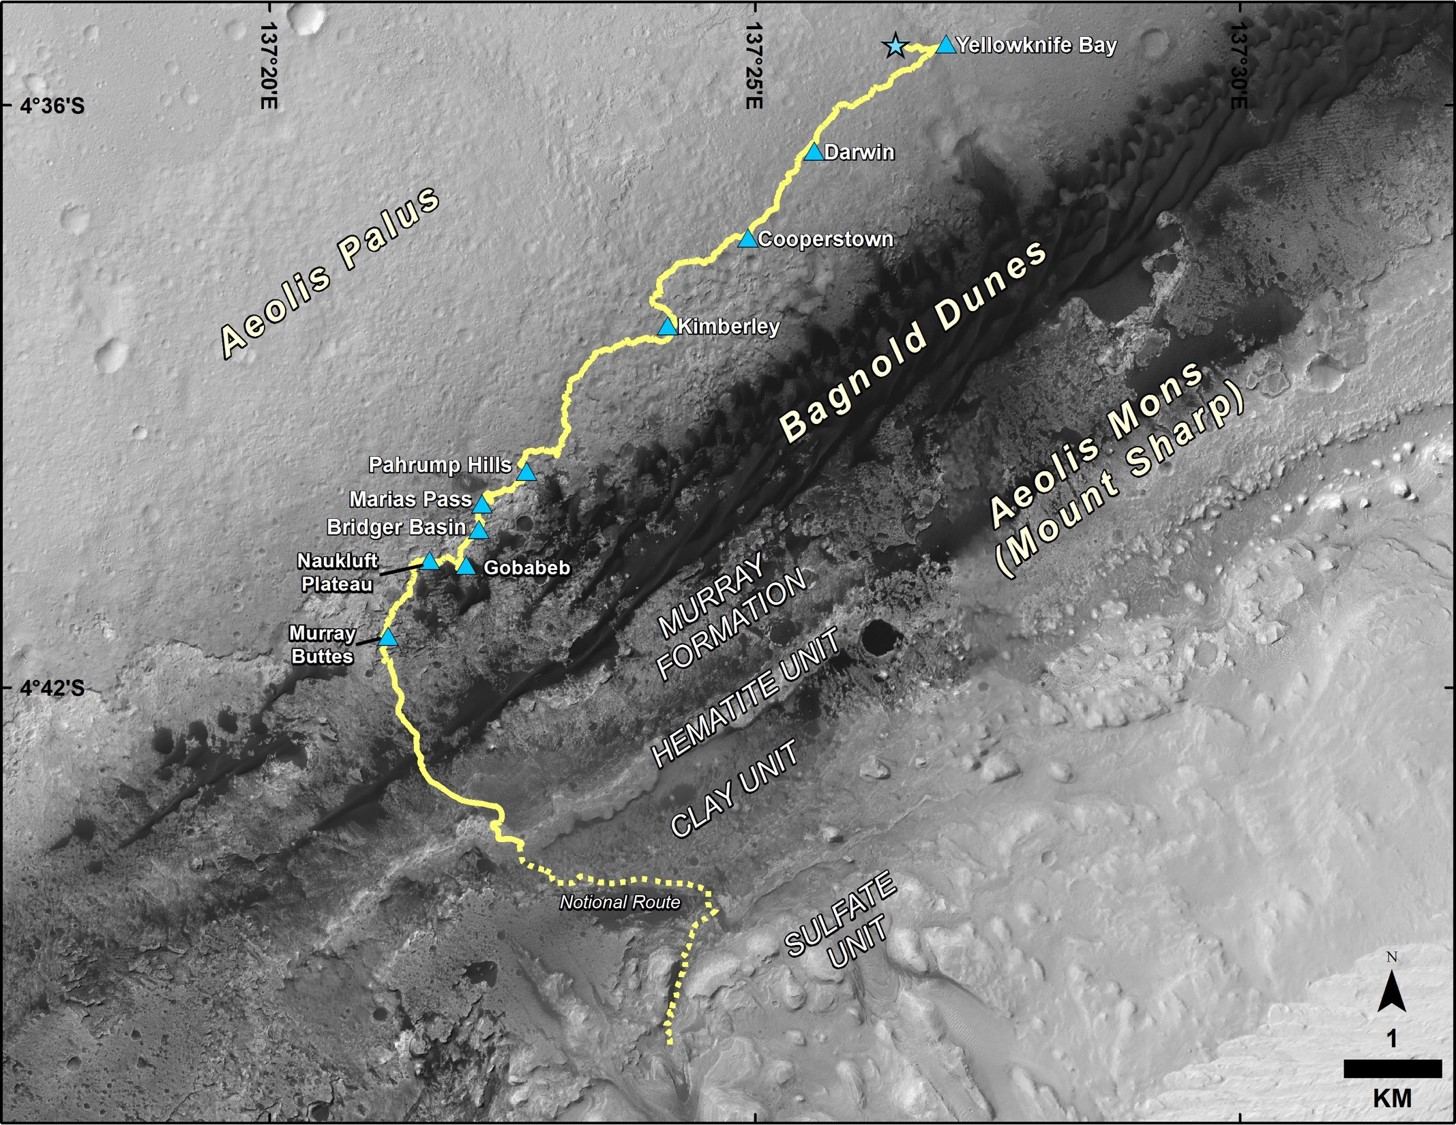 This map shows the route driven by NASA's Curiosity Mars rover from the location where it landed in August 2012 to its location in December 2016, which is in the upper half of a geological unit called the Murray formation, on lower Mount Sharp.